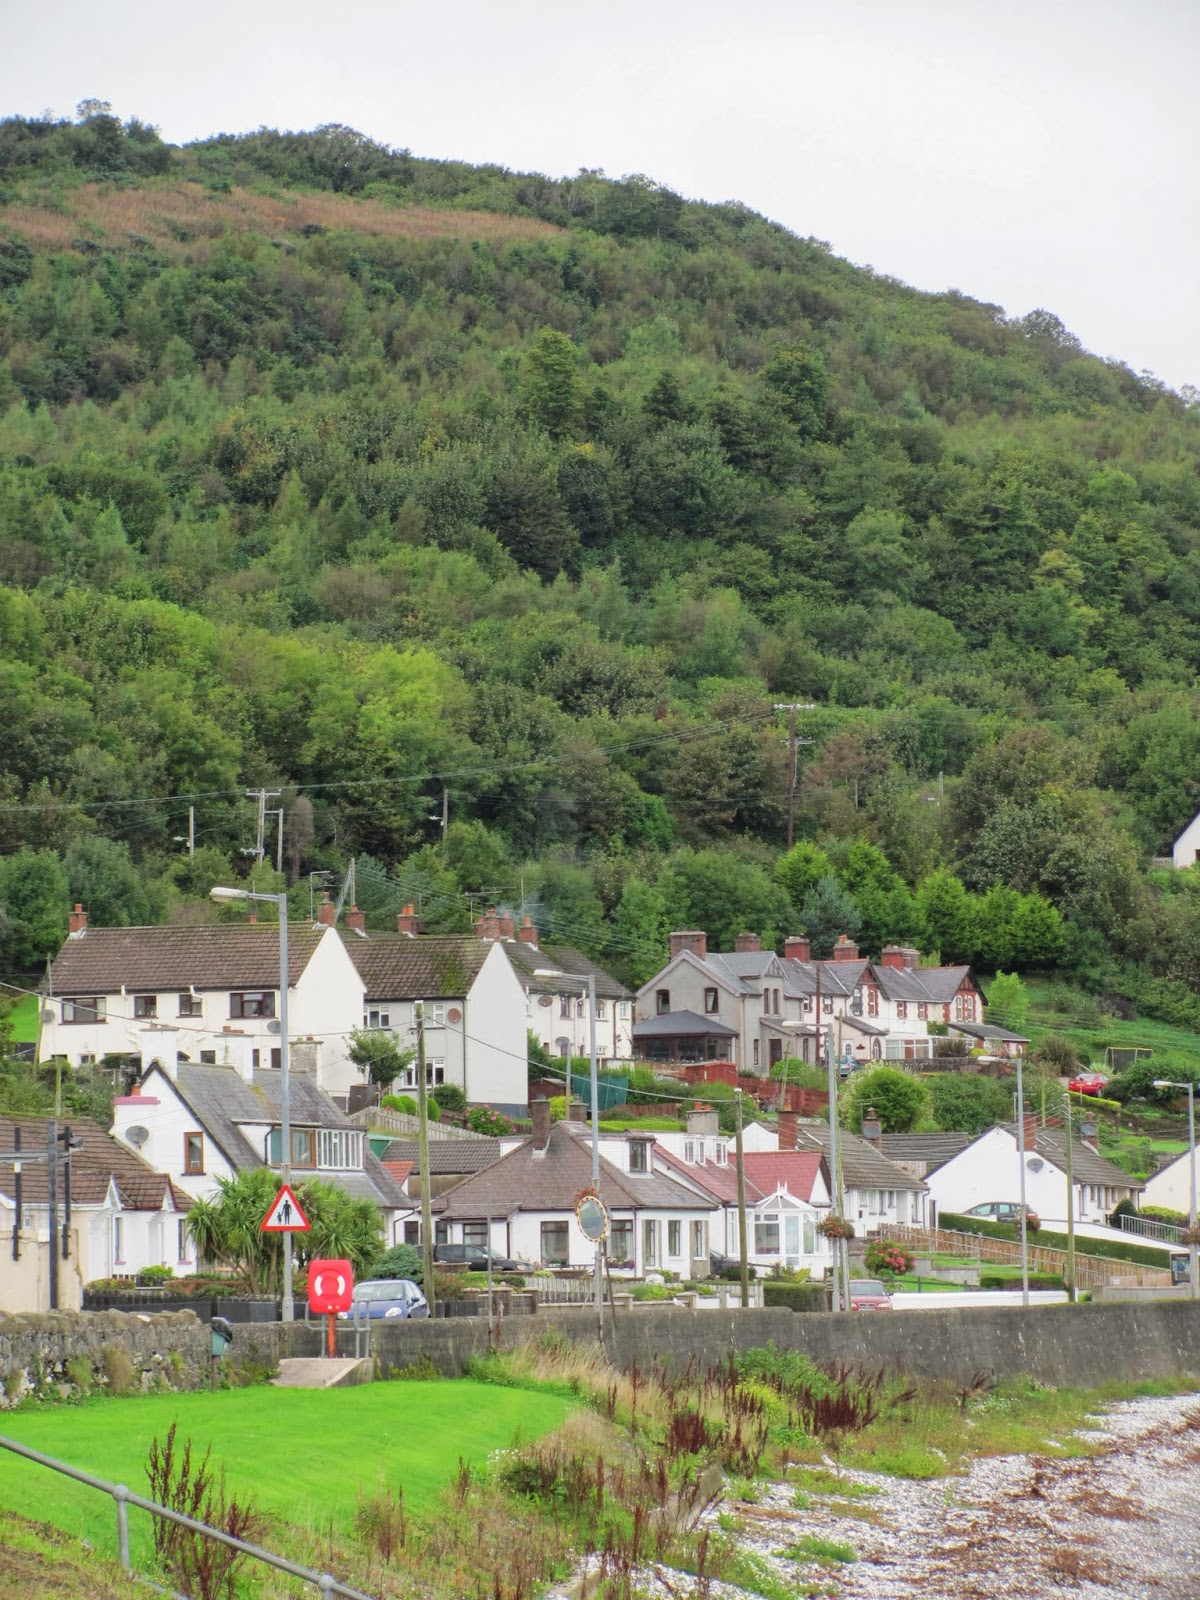 Villages dot the Antrim Coast in Northern Ireland